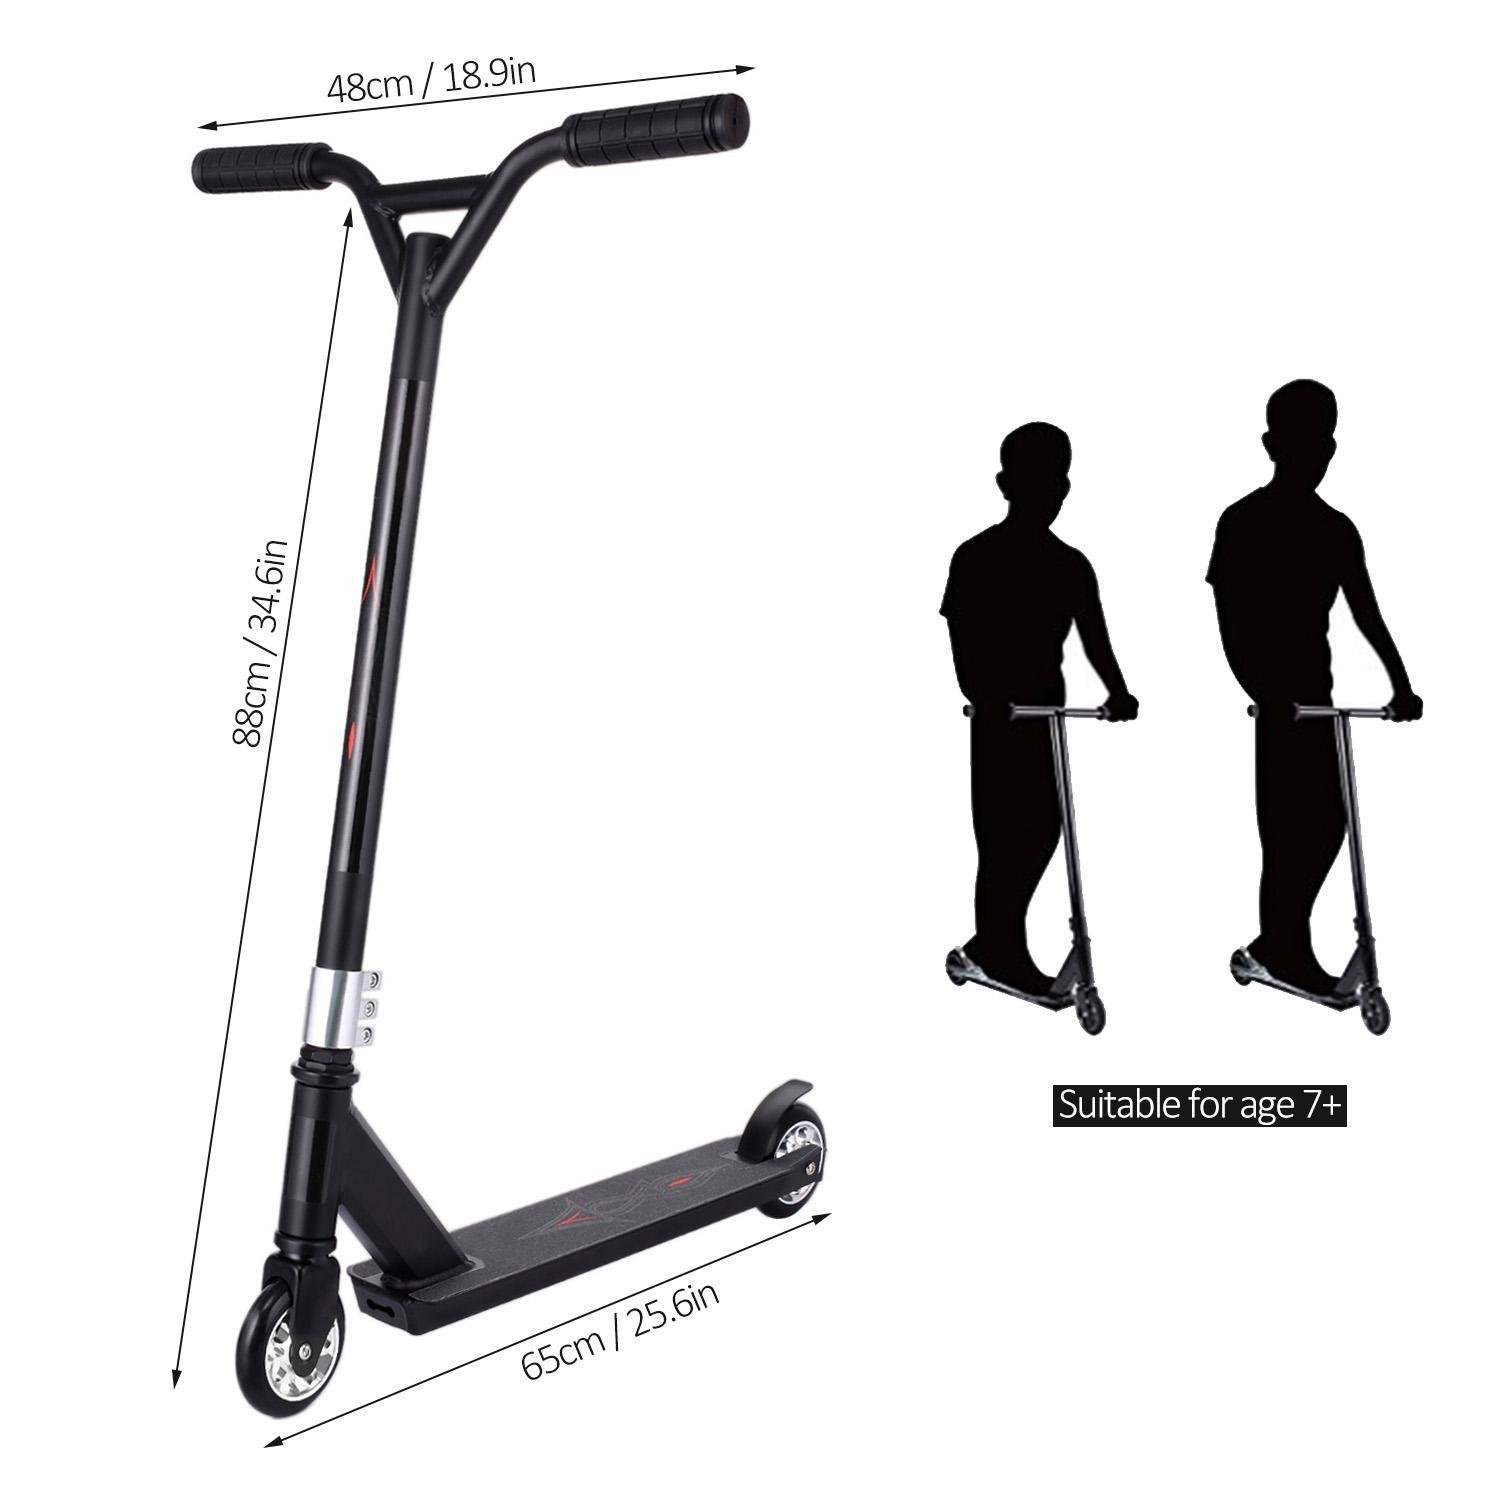 Amazon.com: loveje Pro scooters barato Pro scooters Pro ...